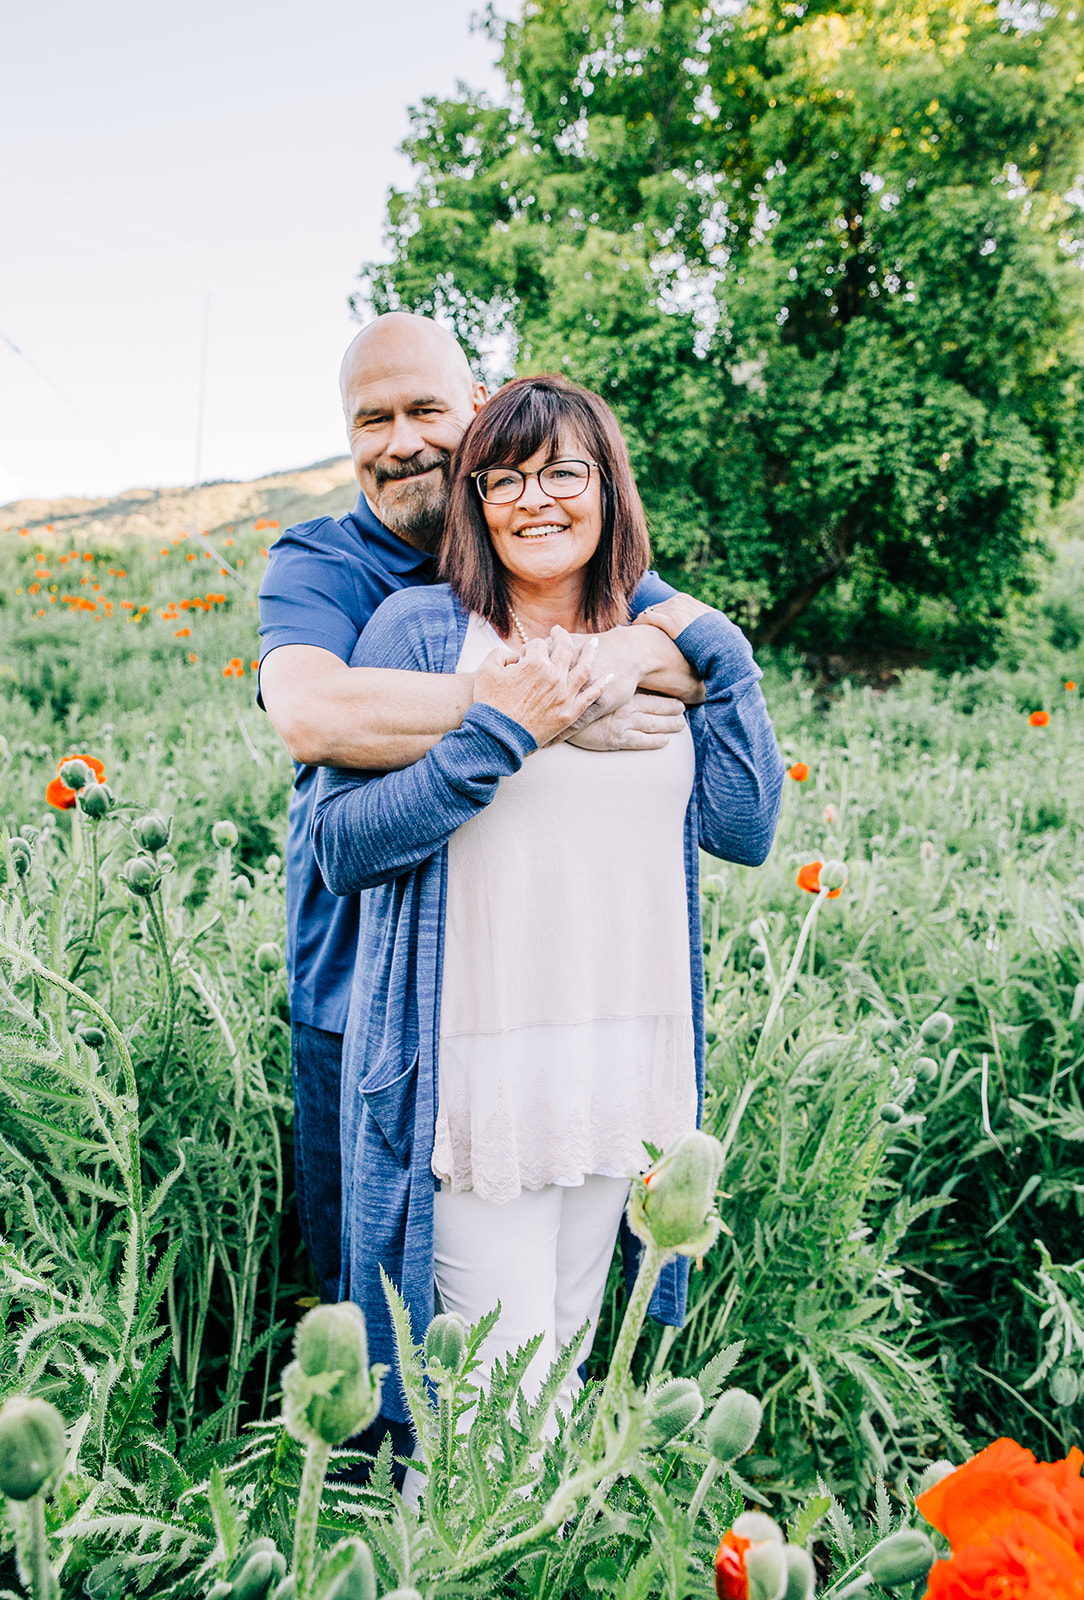 Professional family pictures to remember the special moments by Bella Alder Photography. These were taken in the Mantua, Utah poppy fields at the beginning of the summer as these red flowers were just starting to bloom! #bellaalderphoto #familyphotog #familyphotography #familypictures #familyphotos #outfitinspo #familyoutfits #poppyfields #northernutahfamilyphotographer #utahfamilyphotographer #cachevalleyfamilyphotographer